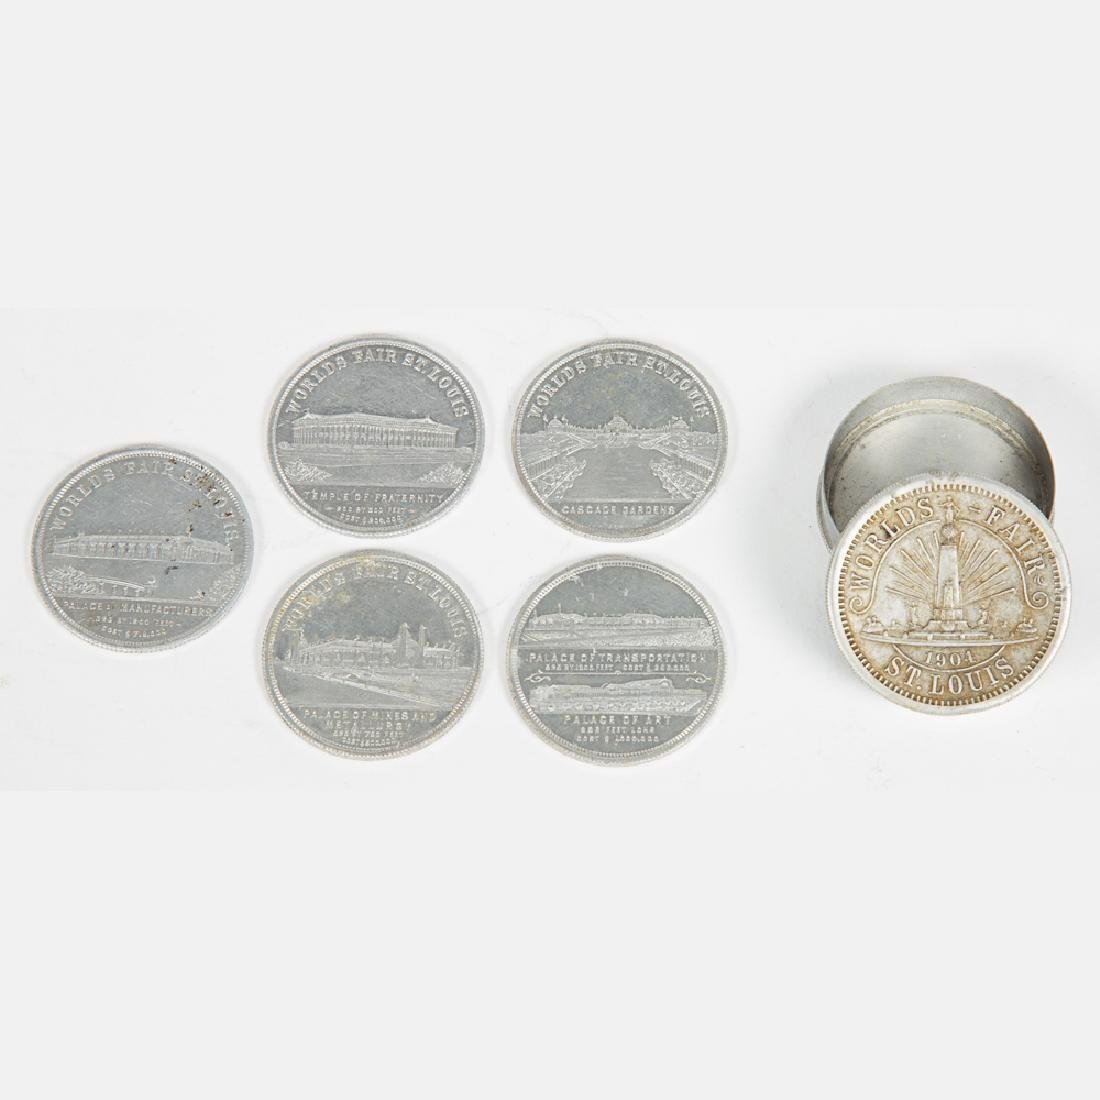 A Box Set of Five Aluminum Palace Dollars from the